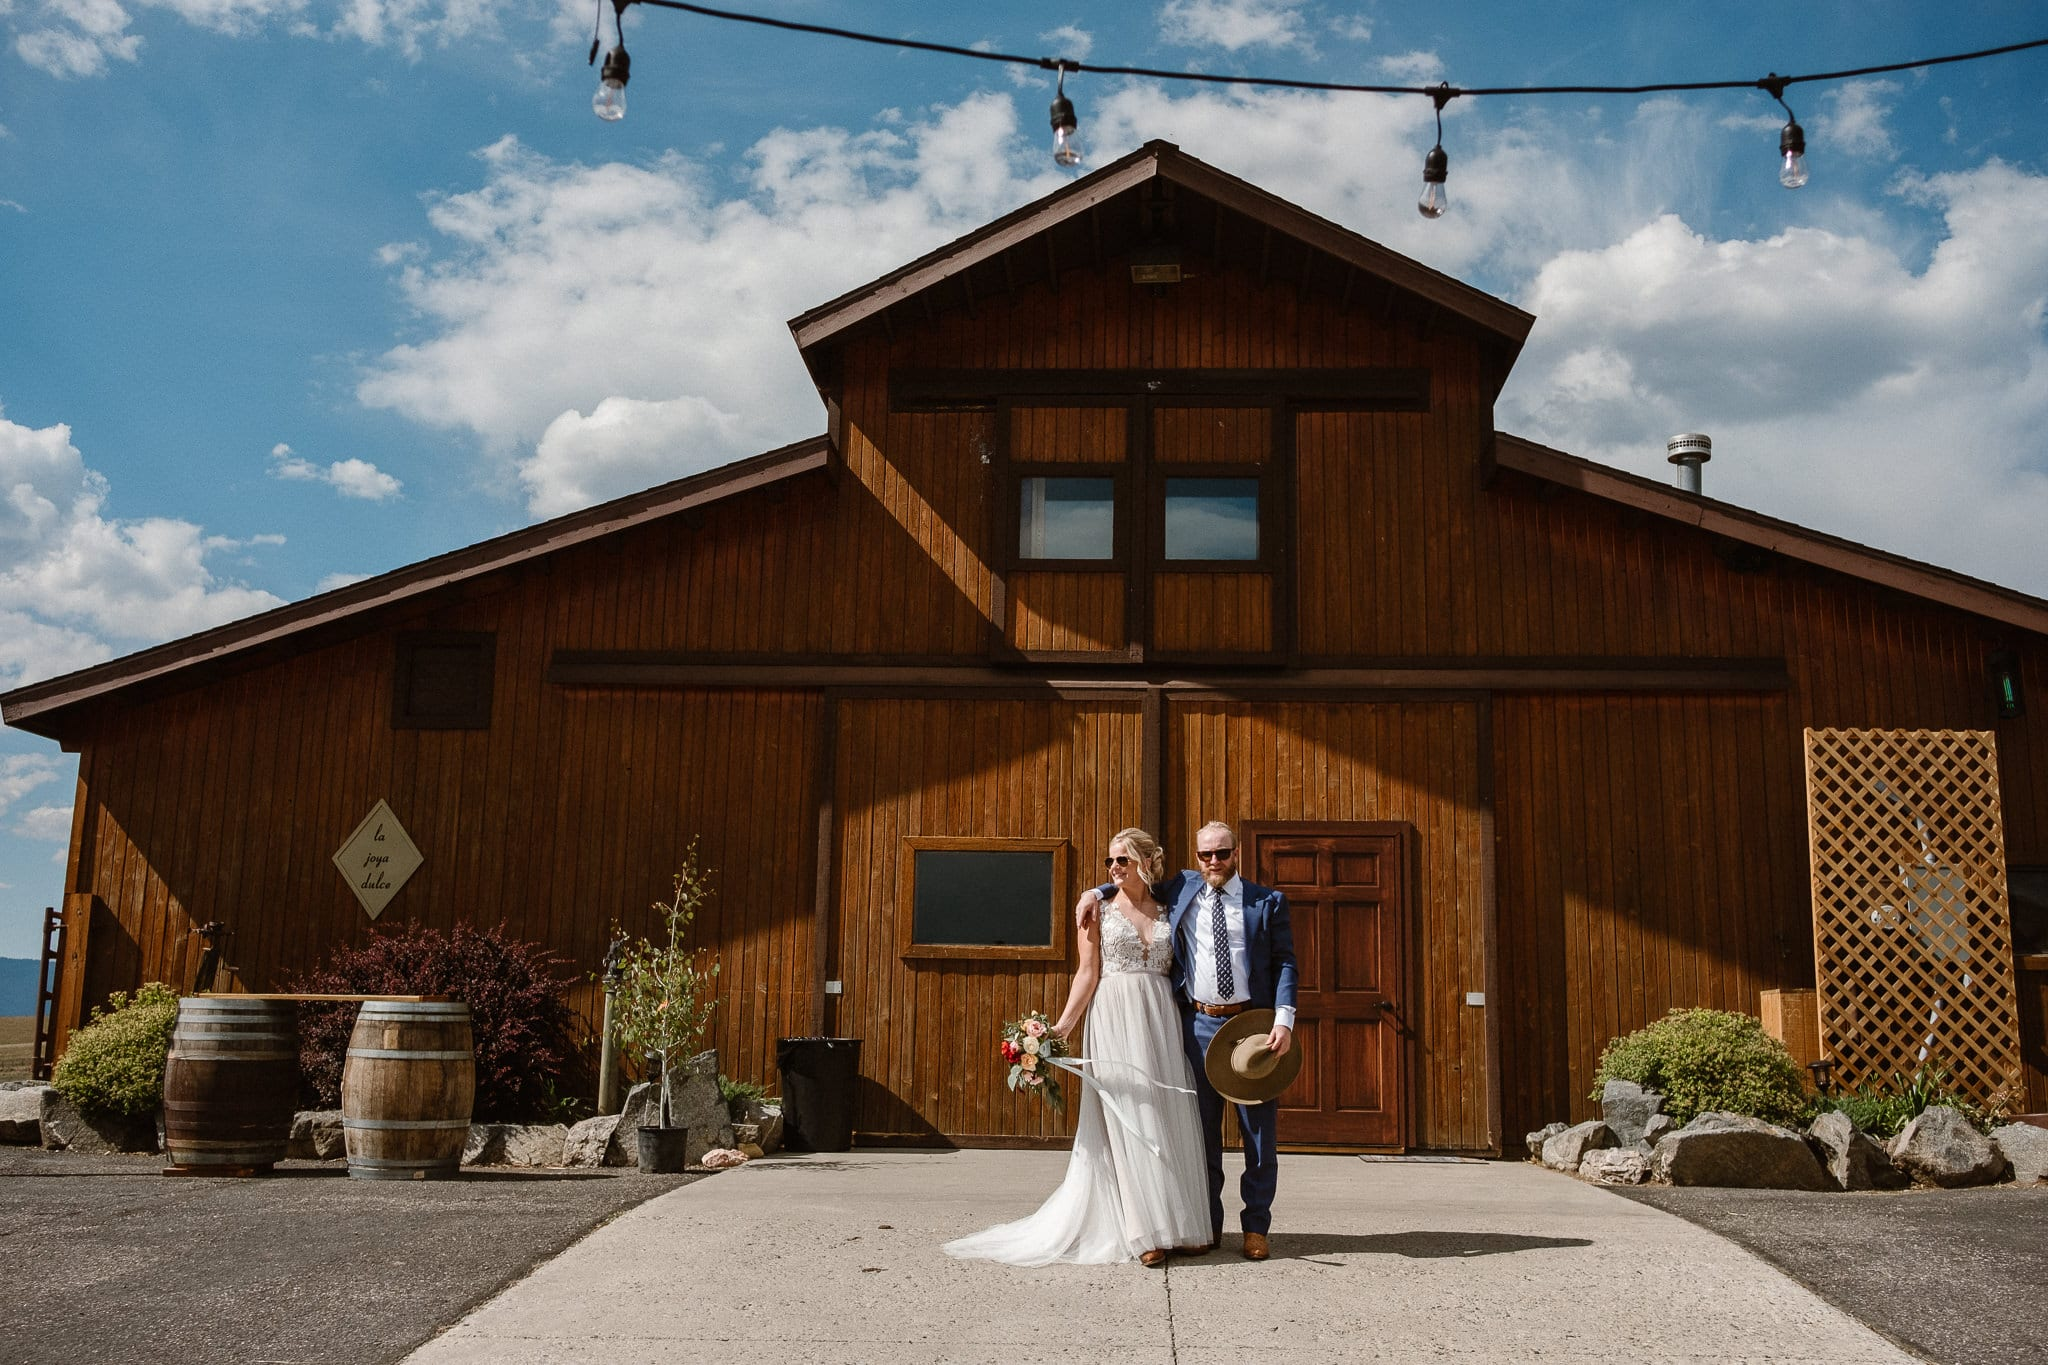 Steamboat Springs wedding photographer, La Joya Dulce wedding, Colorado ranch wedding venues, barn wedding, bride and groom portraits